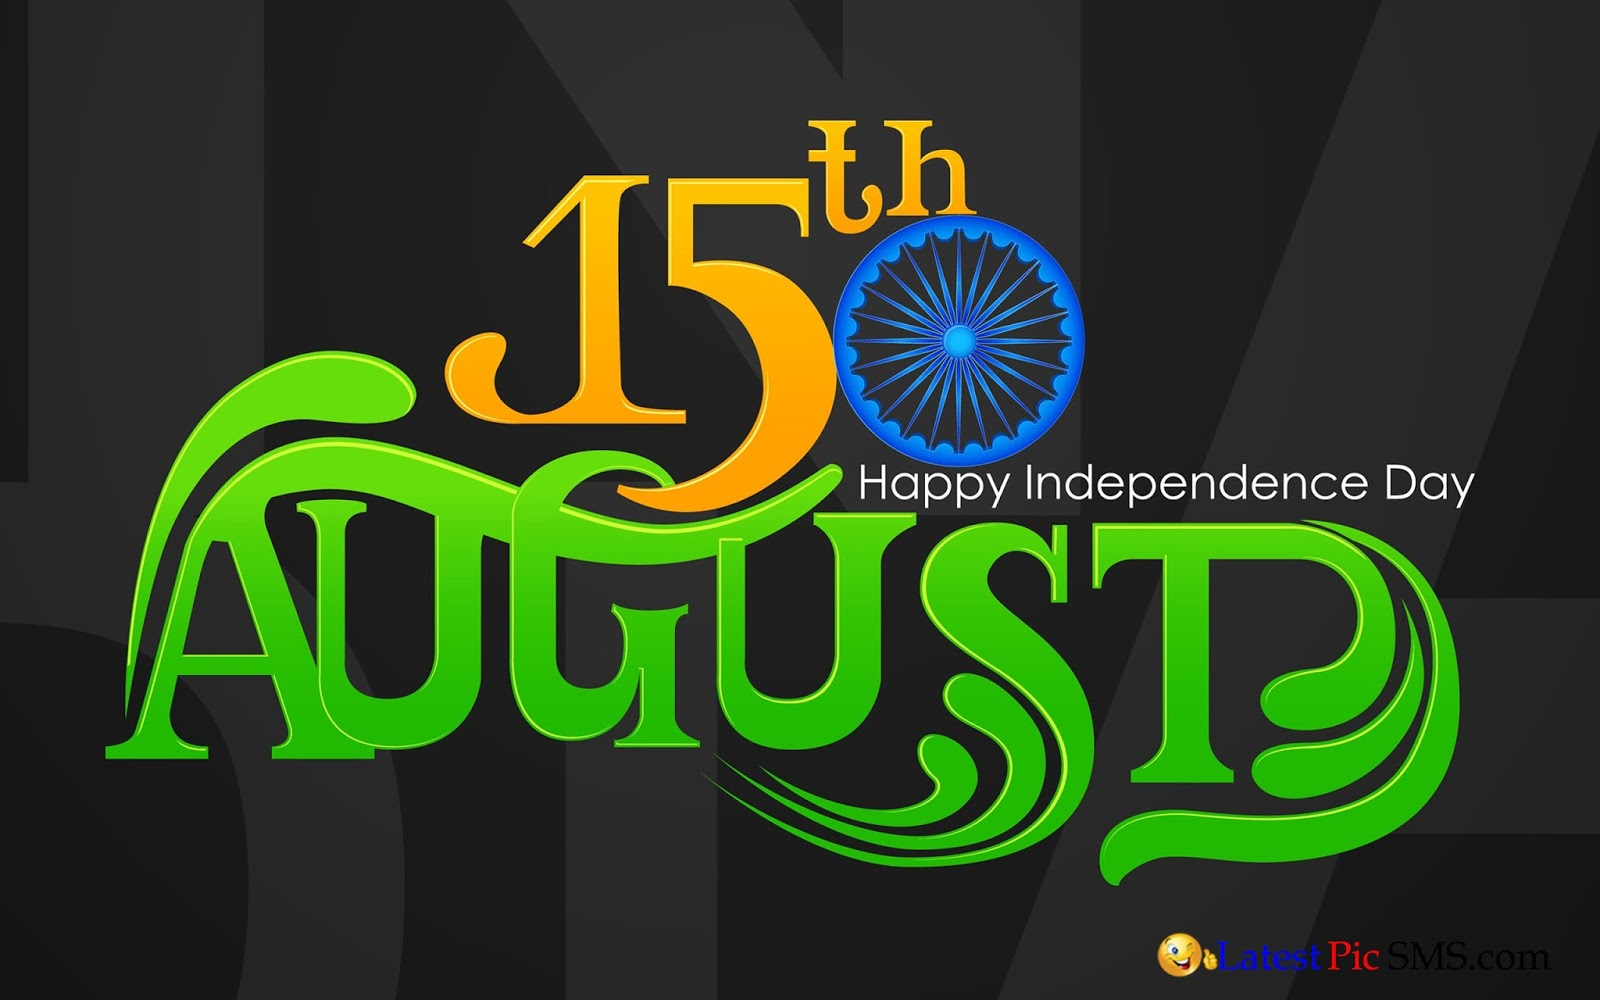 15th August Happy Independence Day Amazing Style Photo